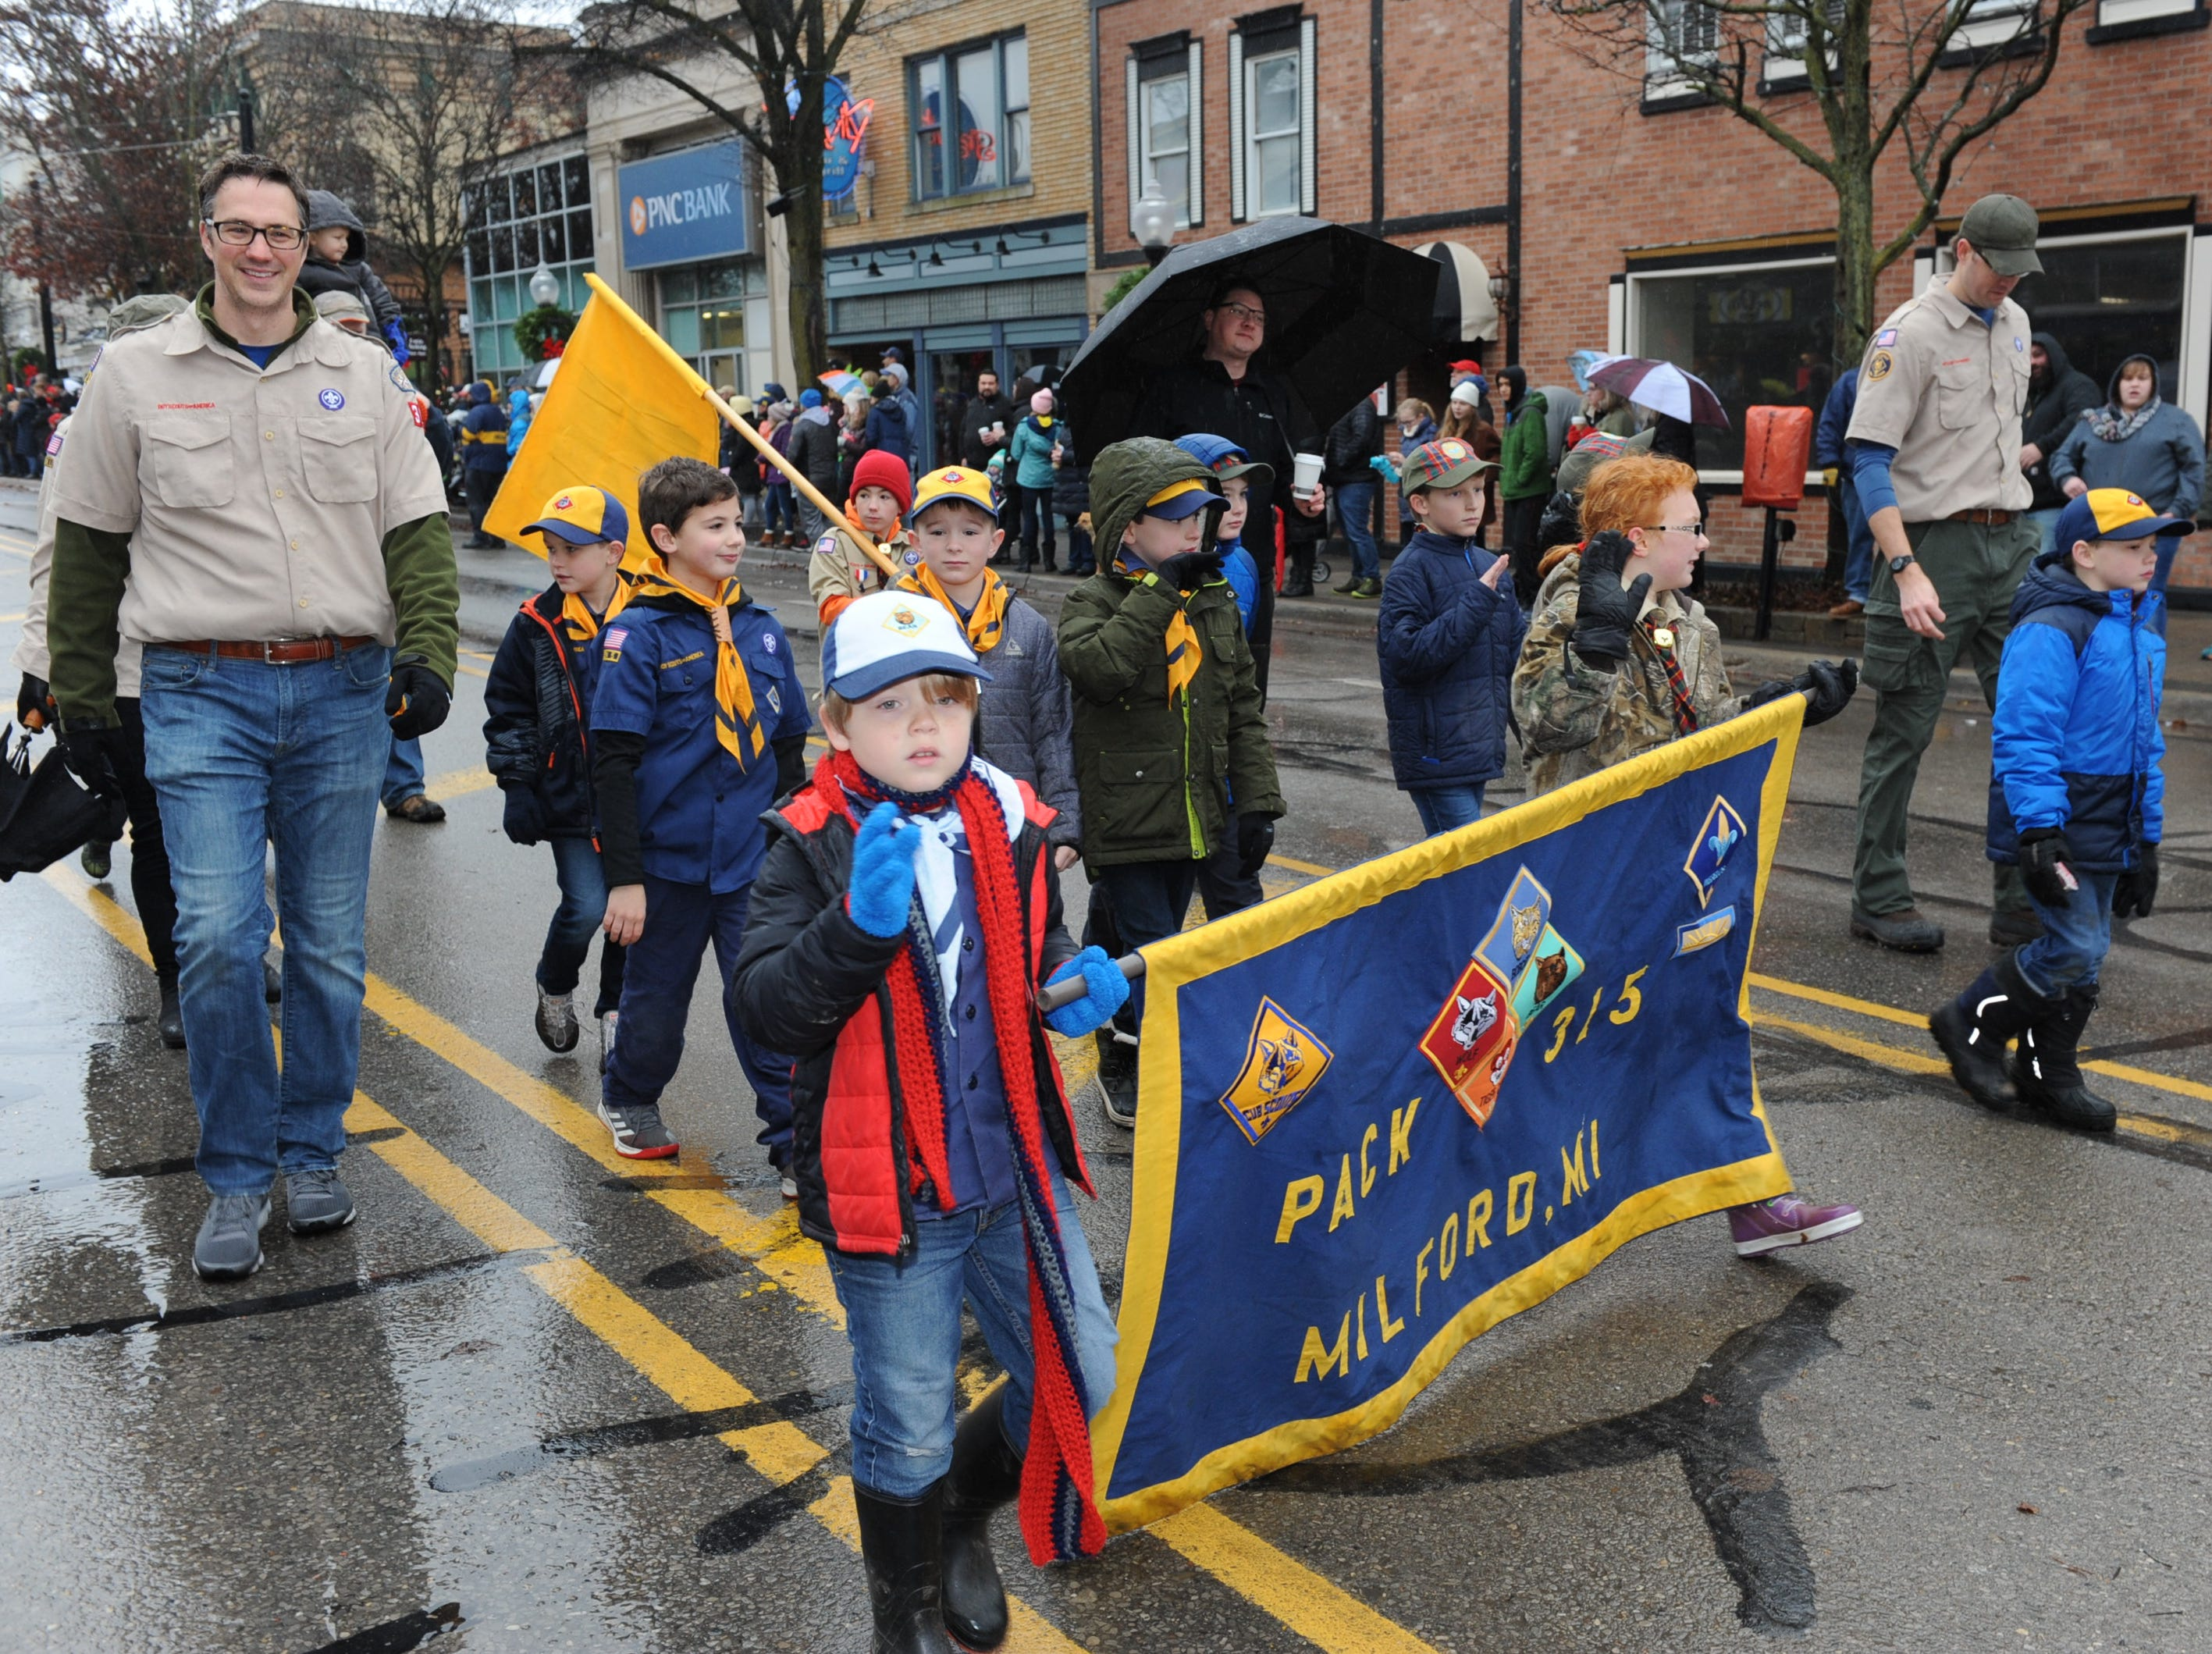 Milford Cub Scout Pack #315 waves to the crowds in downtown Milford.